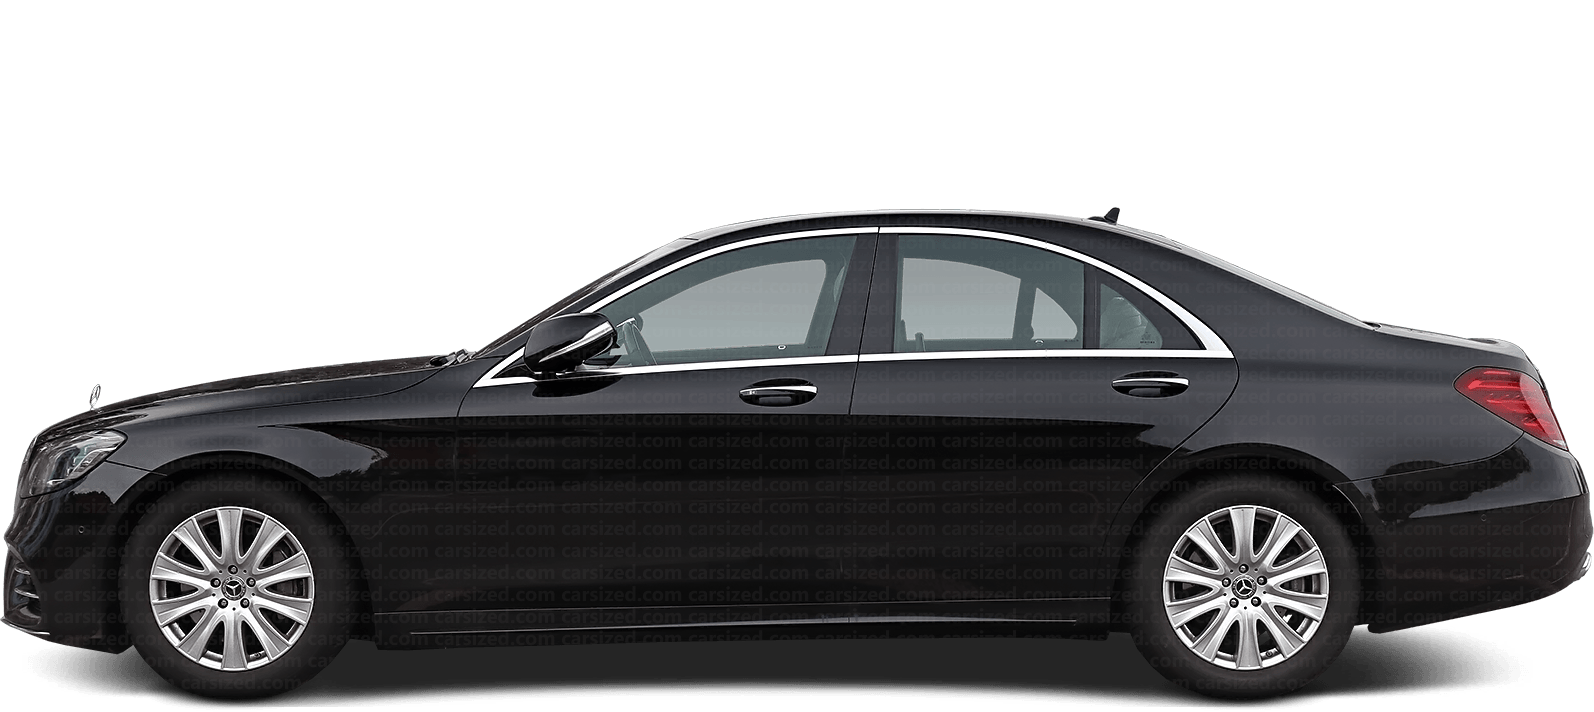 Mercedes-Benz S-Class Sedan  2018 - present